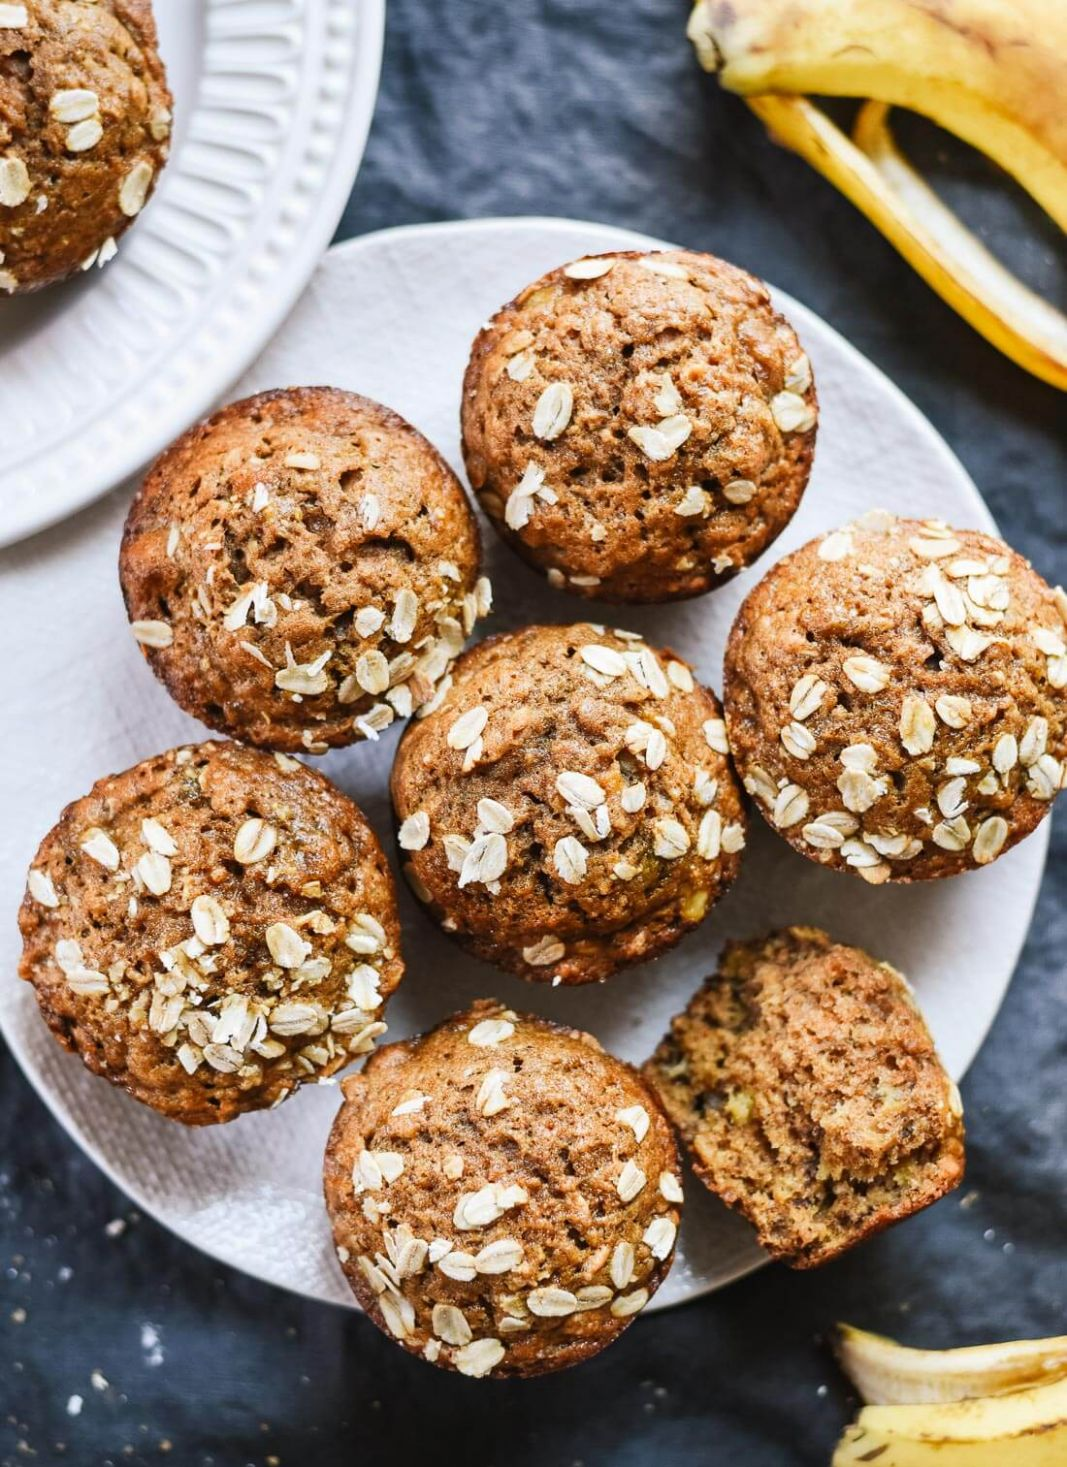 Maple-Sweetened Banana Muffins - Healthy Recipes With Bananas